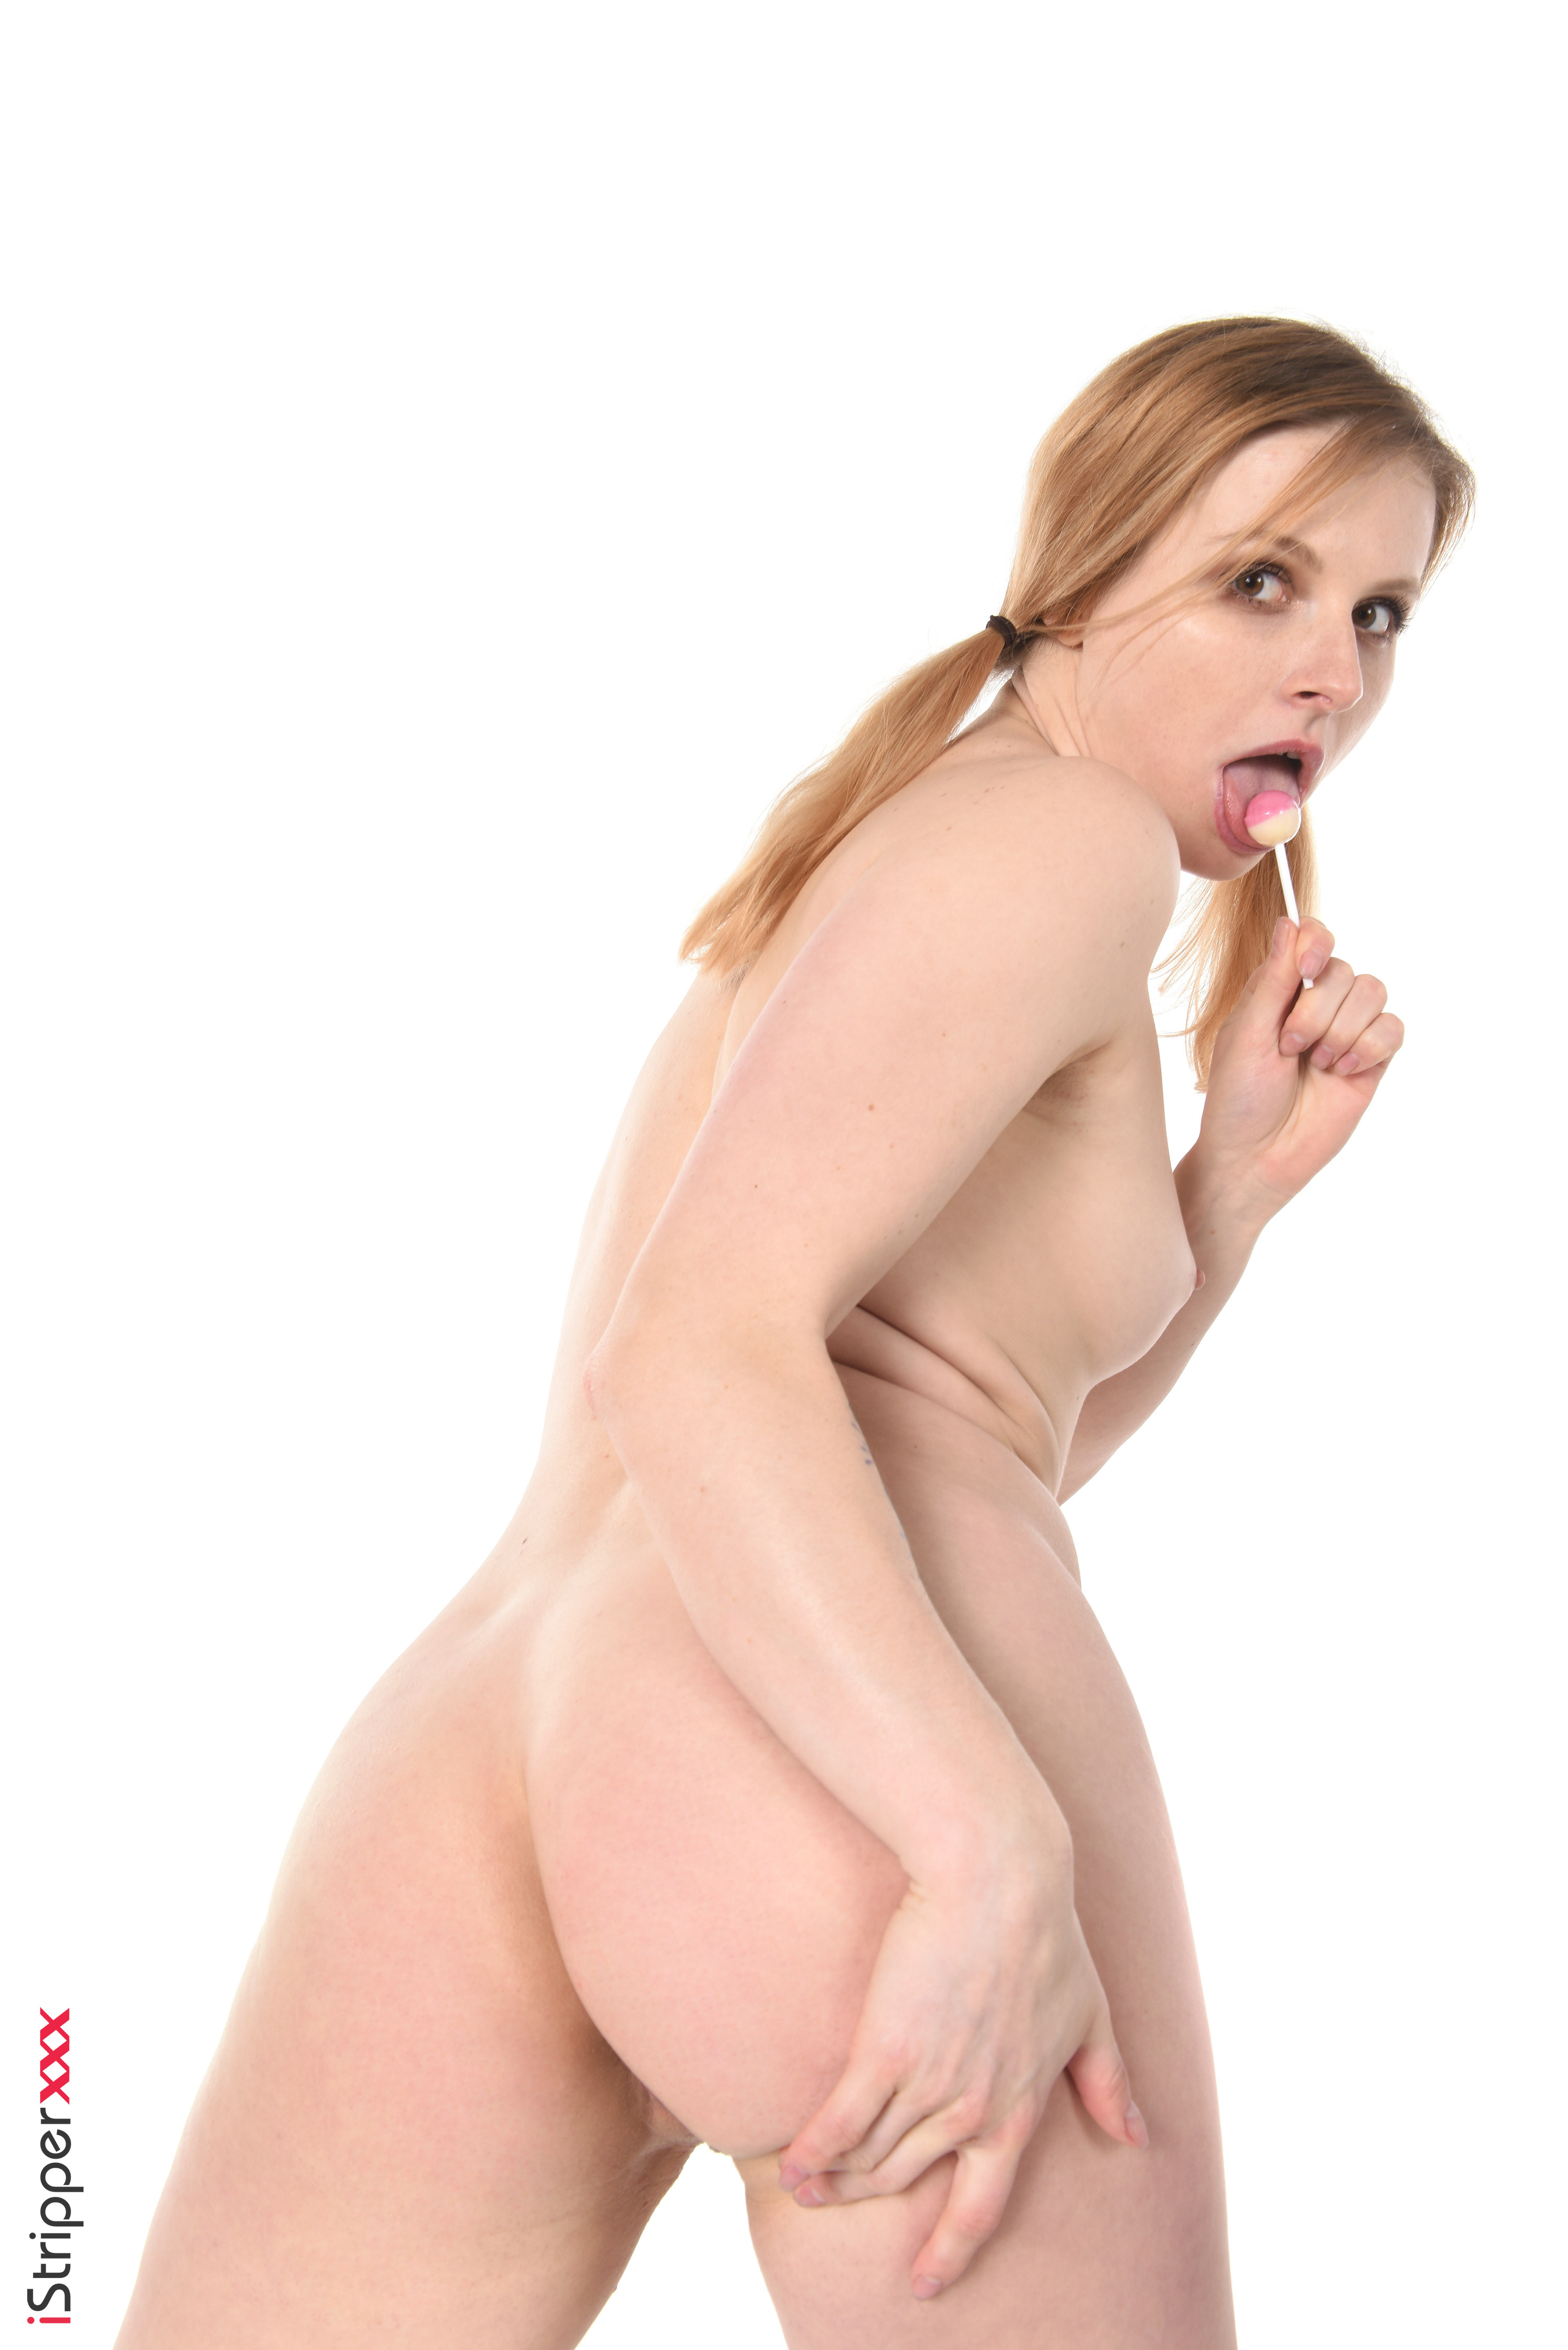 hot and nude wallpapers